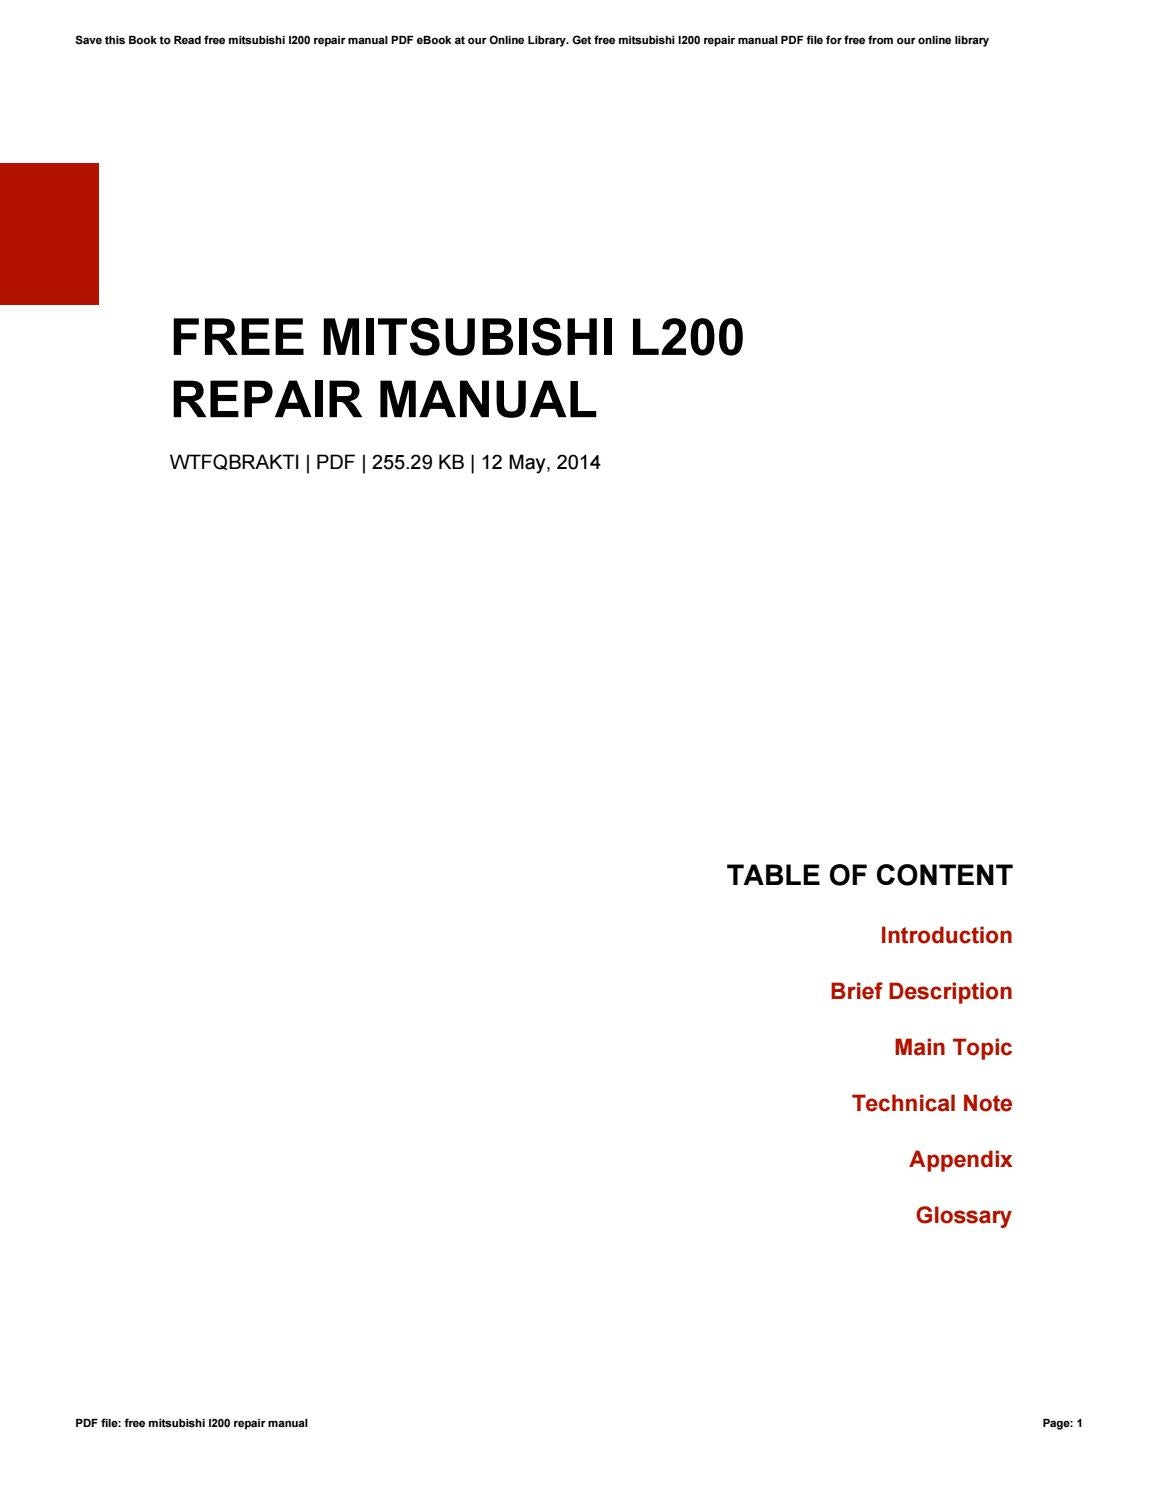 Free mitsubishi l200 repair manual by KathrynSlay1585 - issuu